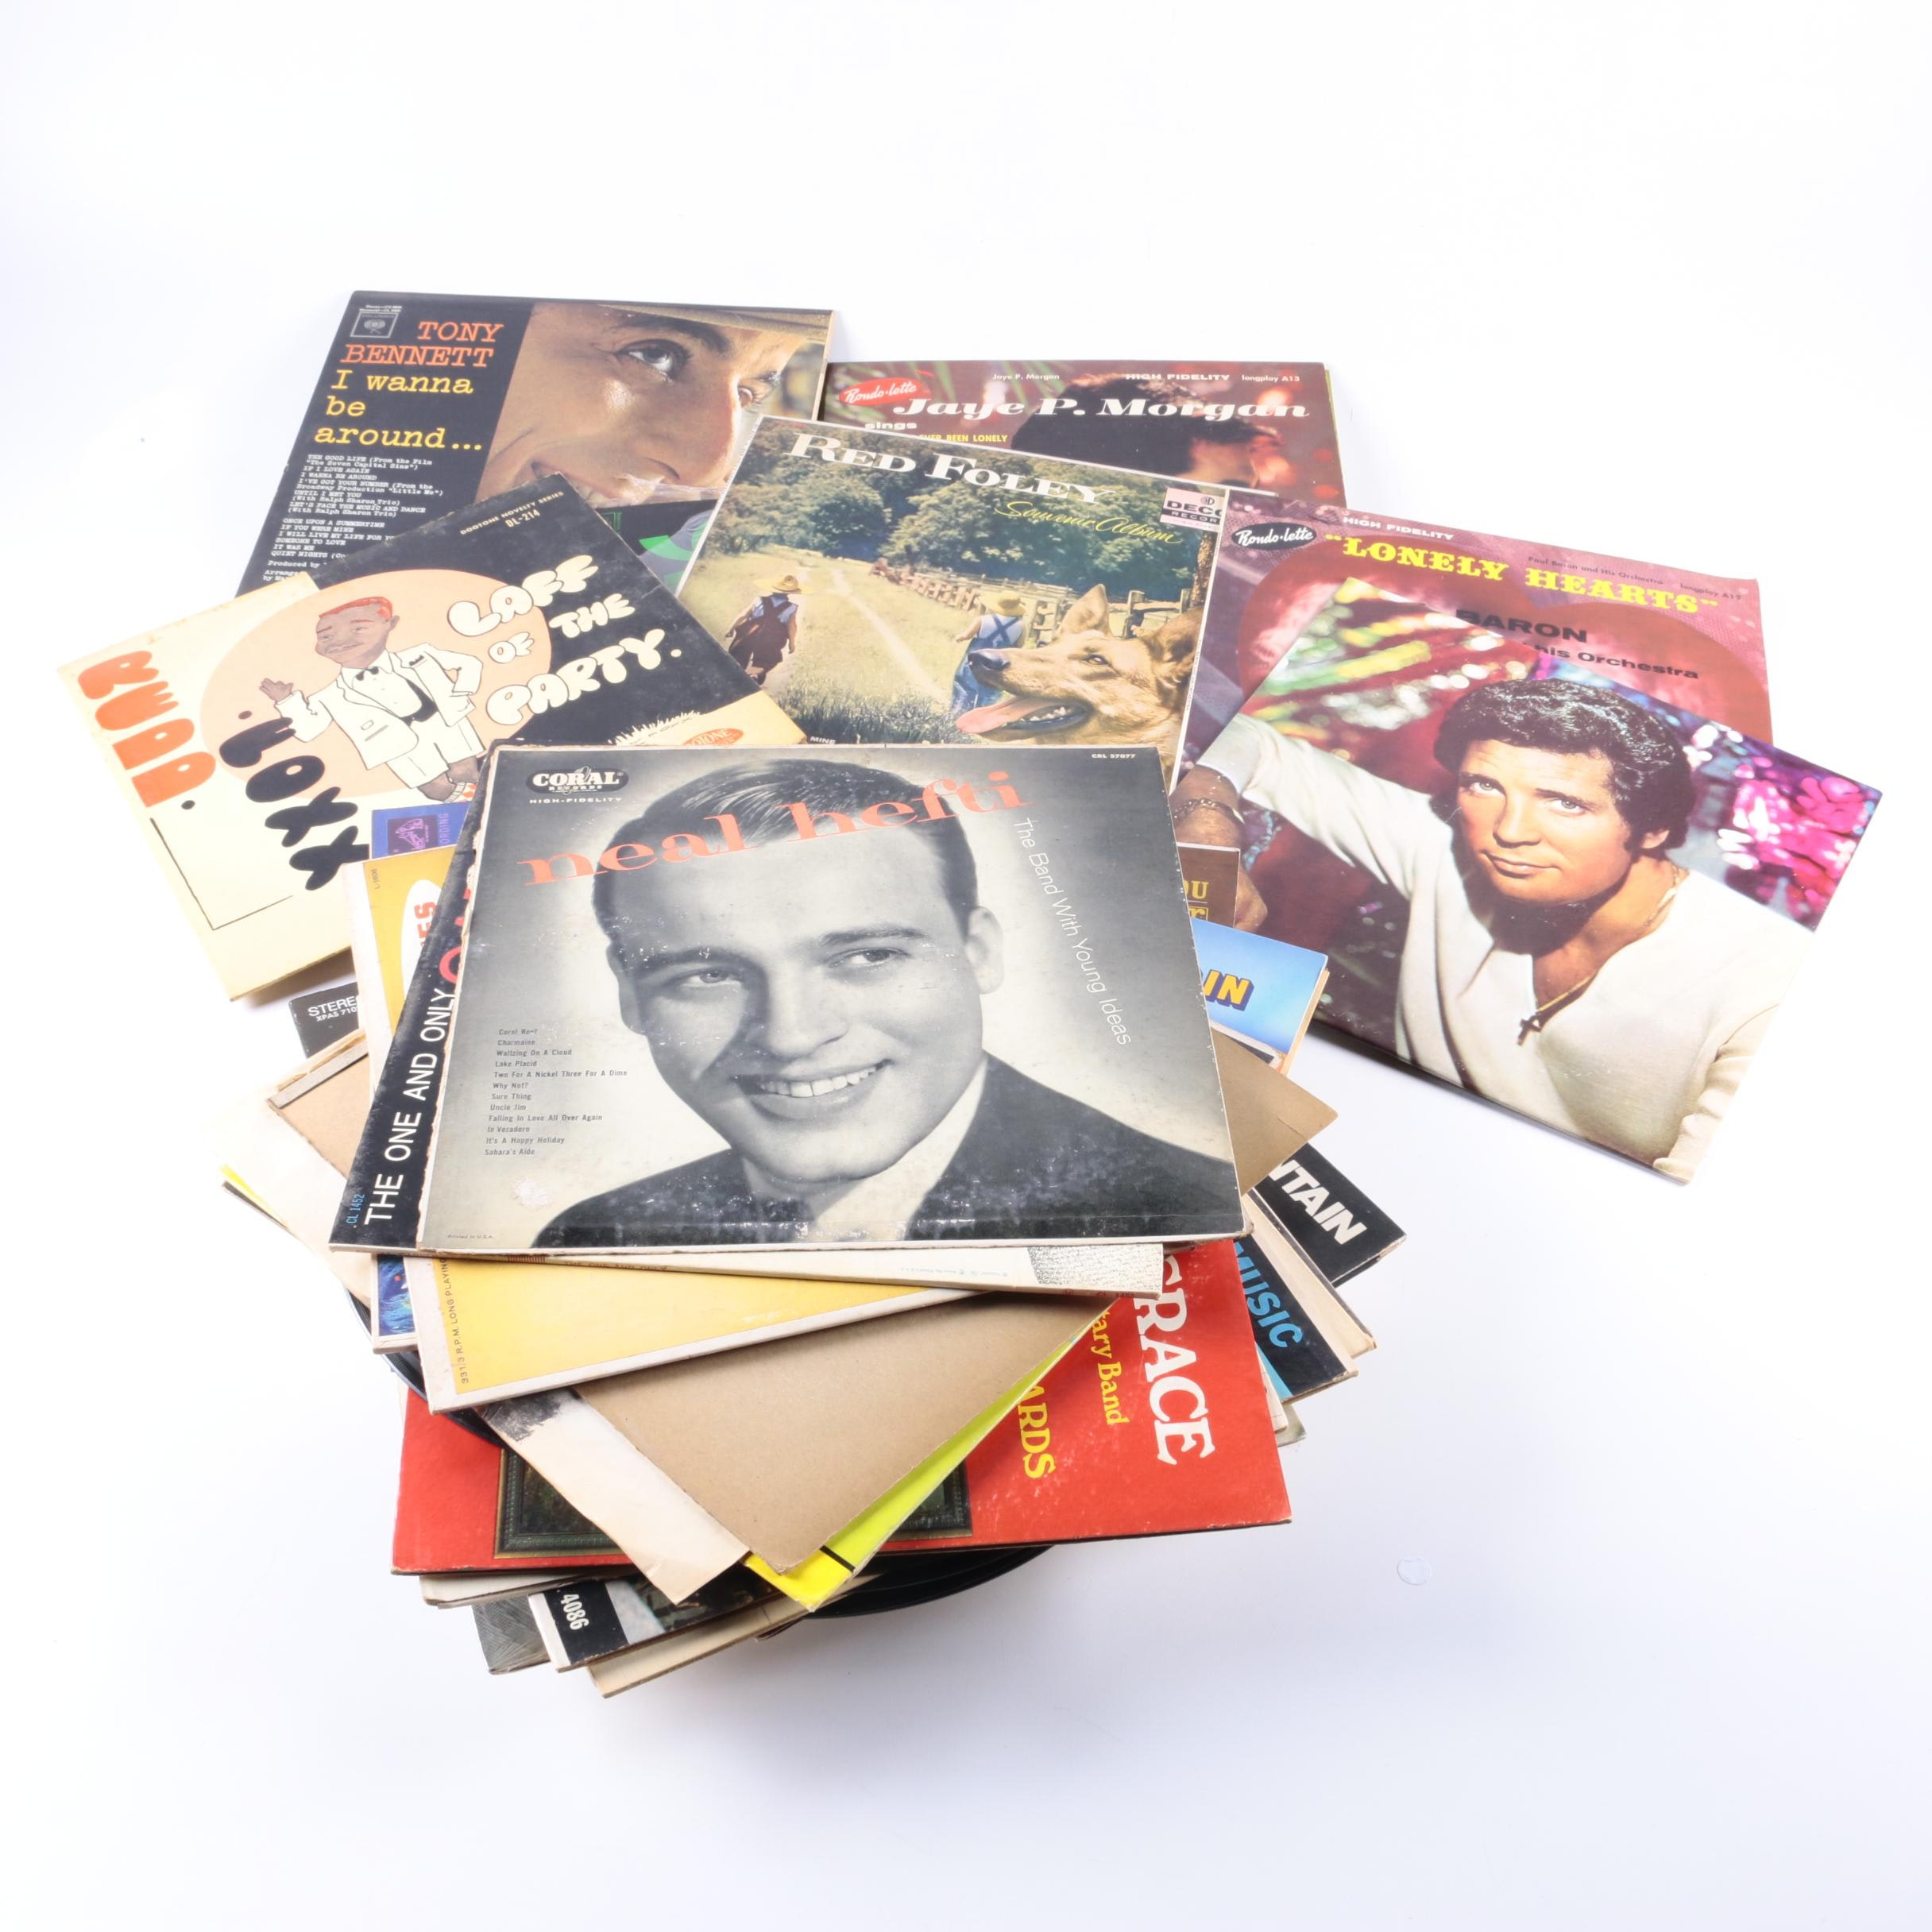 Tony Bennett and Other Vintage LPs